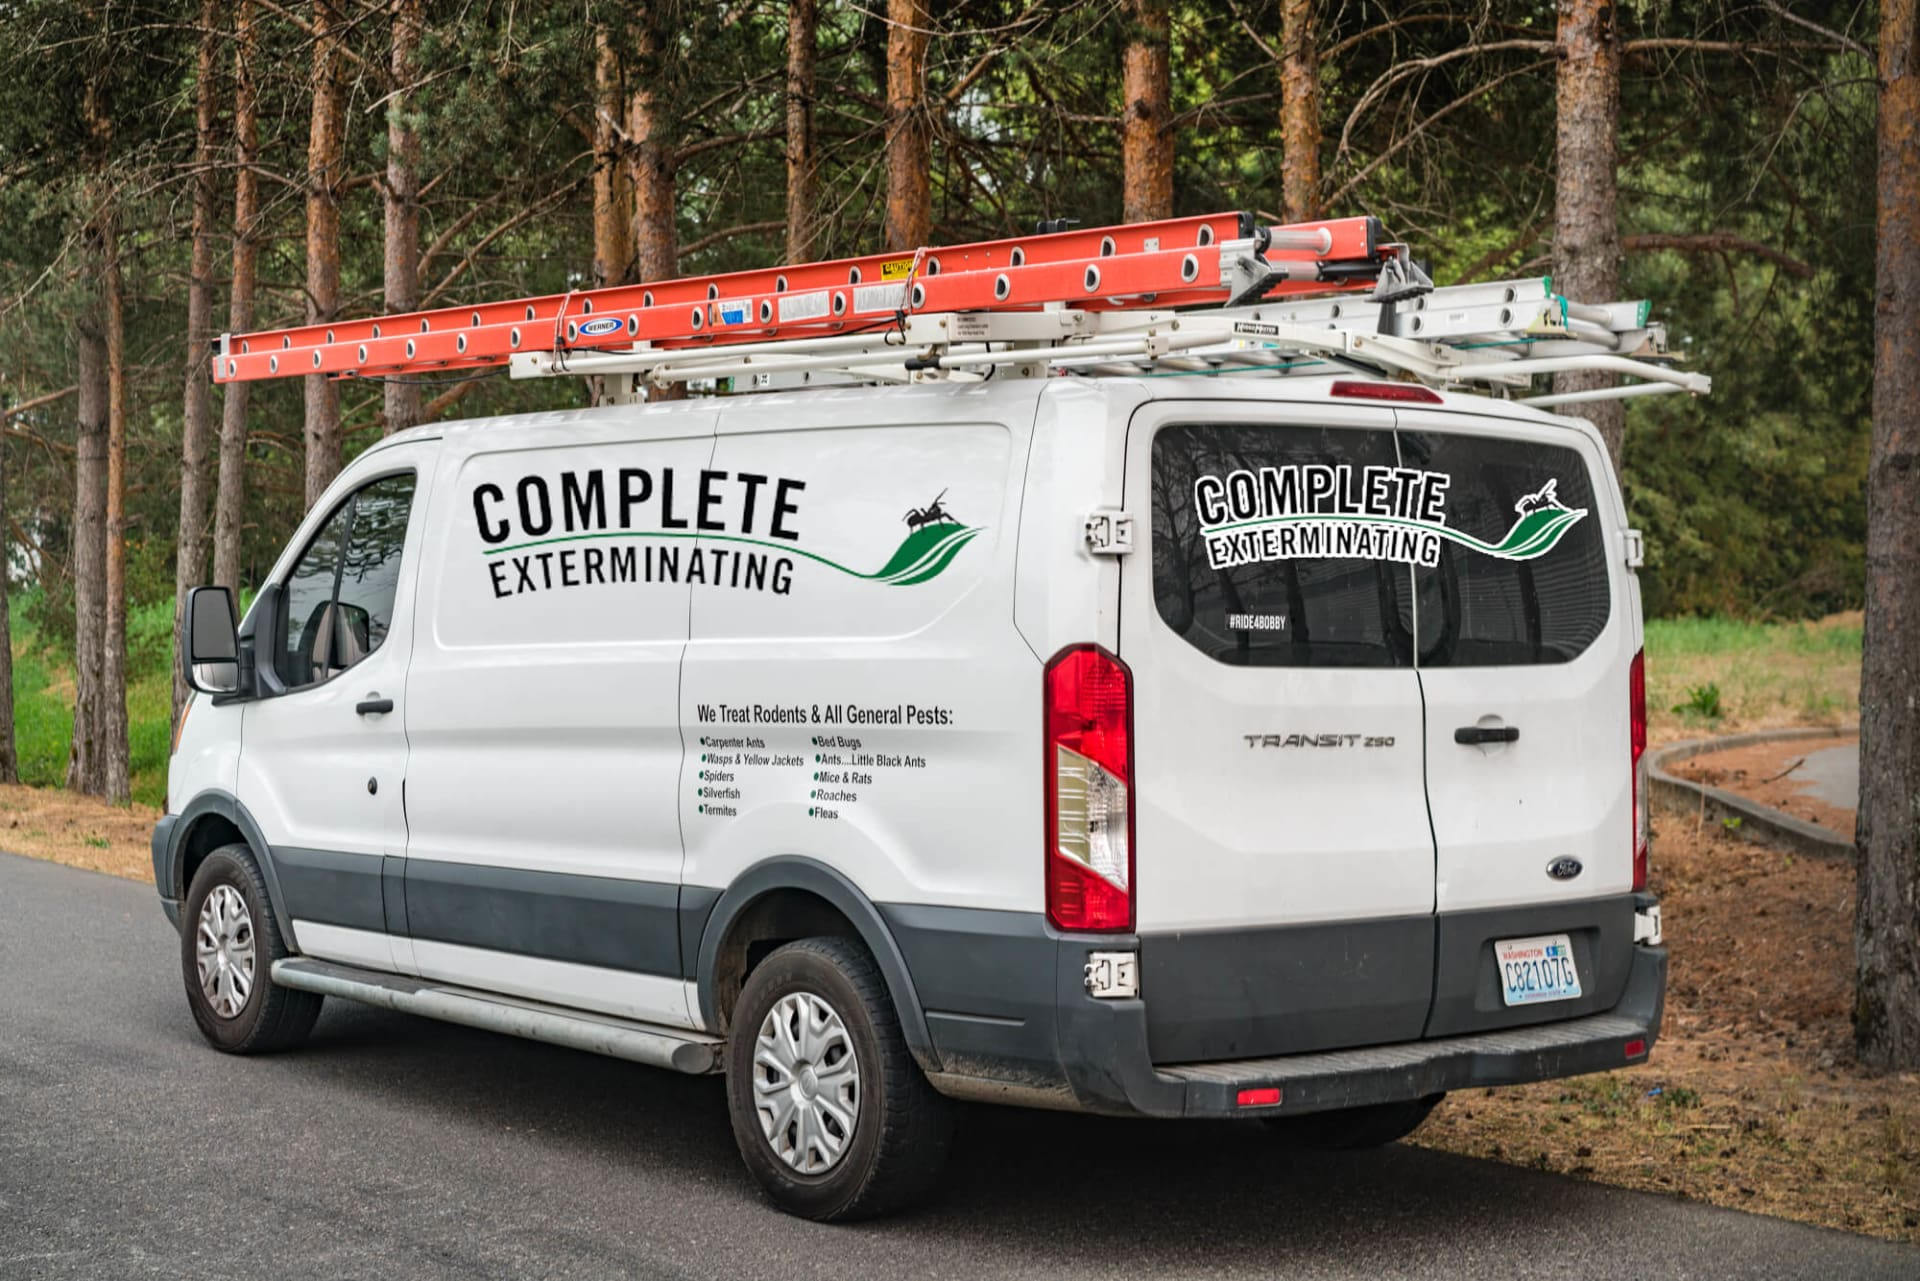 Complete Exterminating : We Tread Rodents & All General Pests in Vancouver, WA & Portland, OR